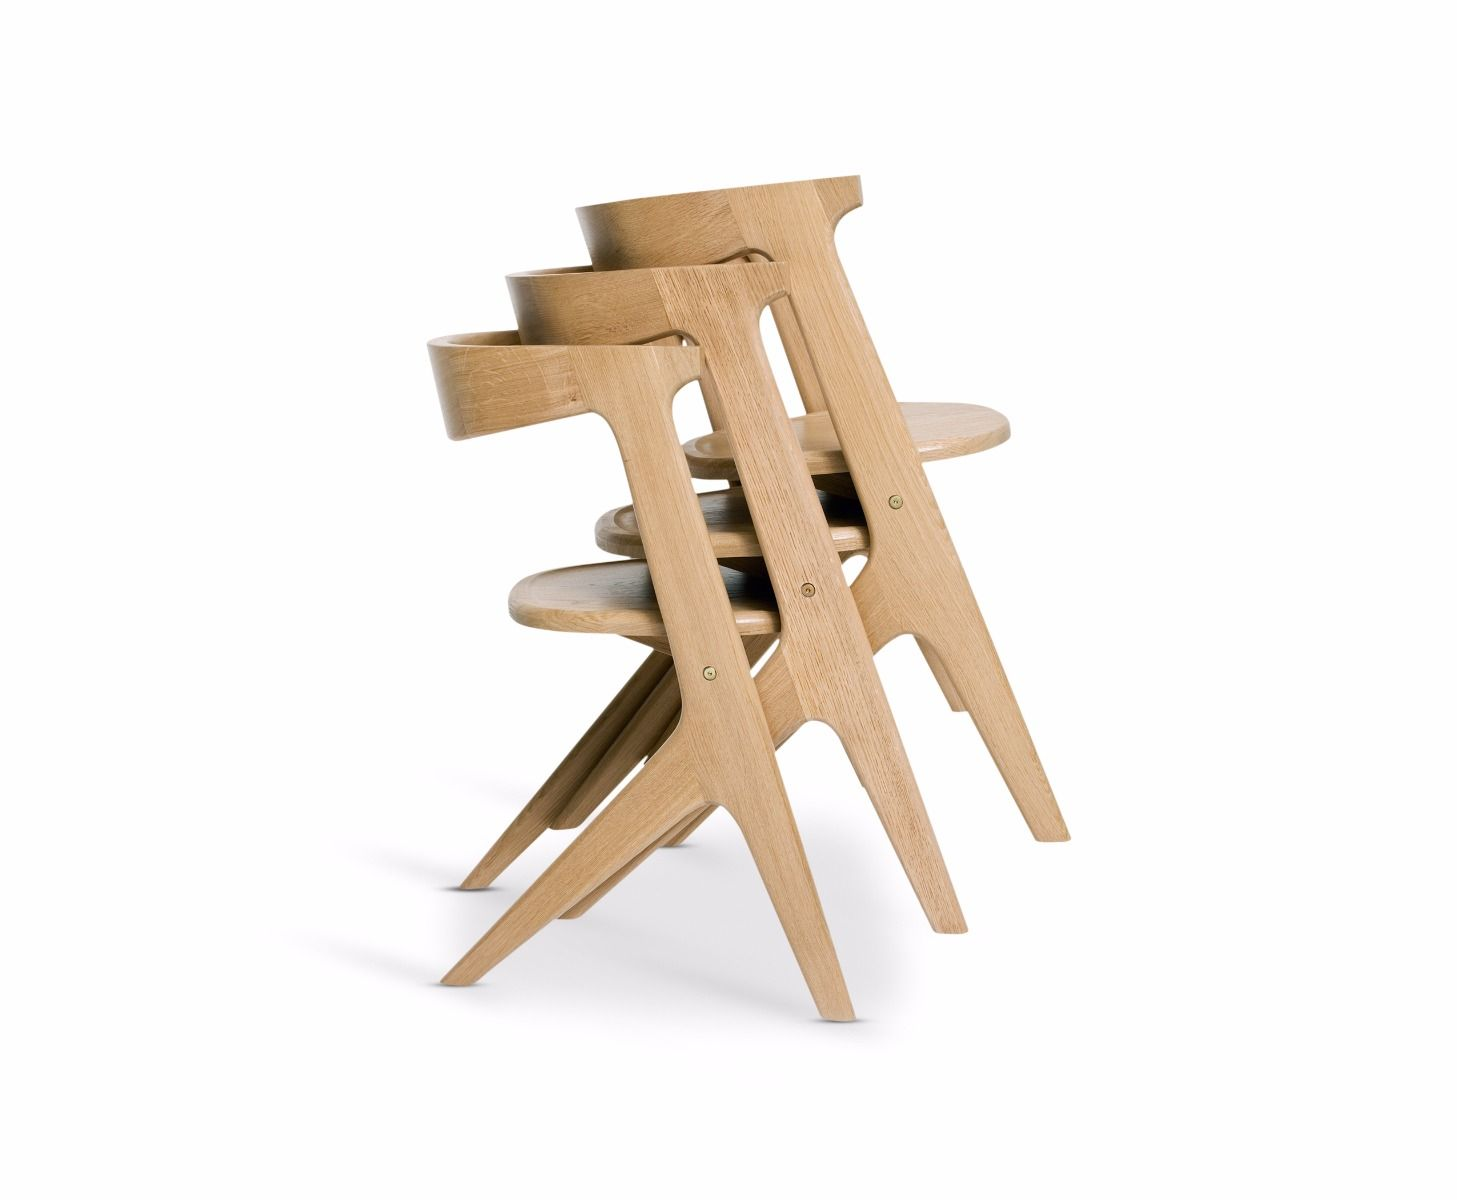 slab_chair_stack_natural_cutout.jpg